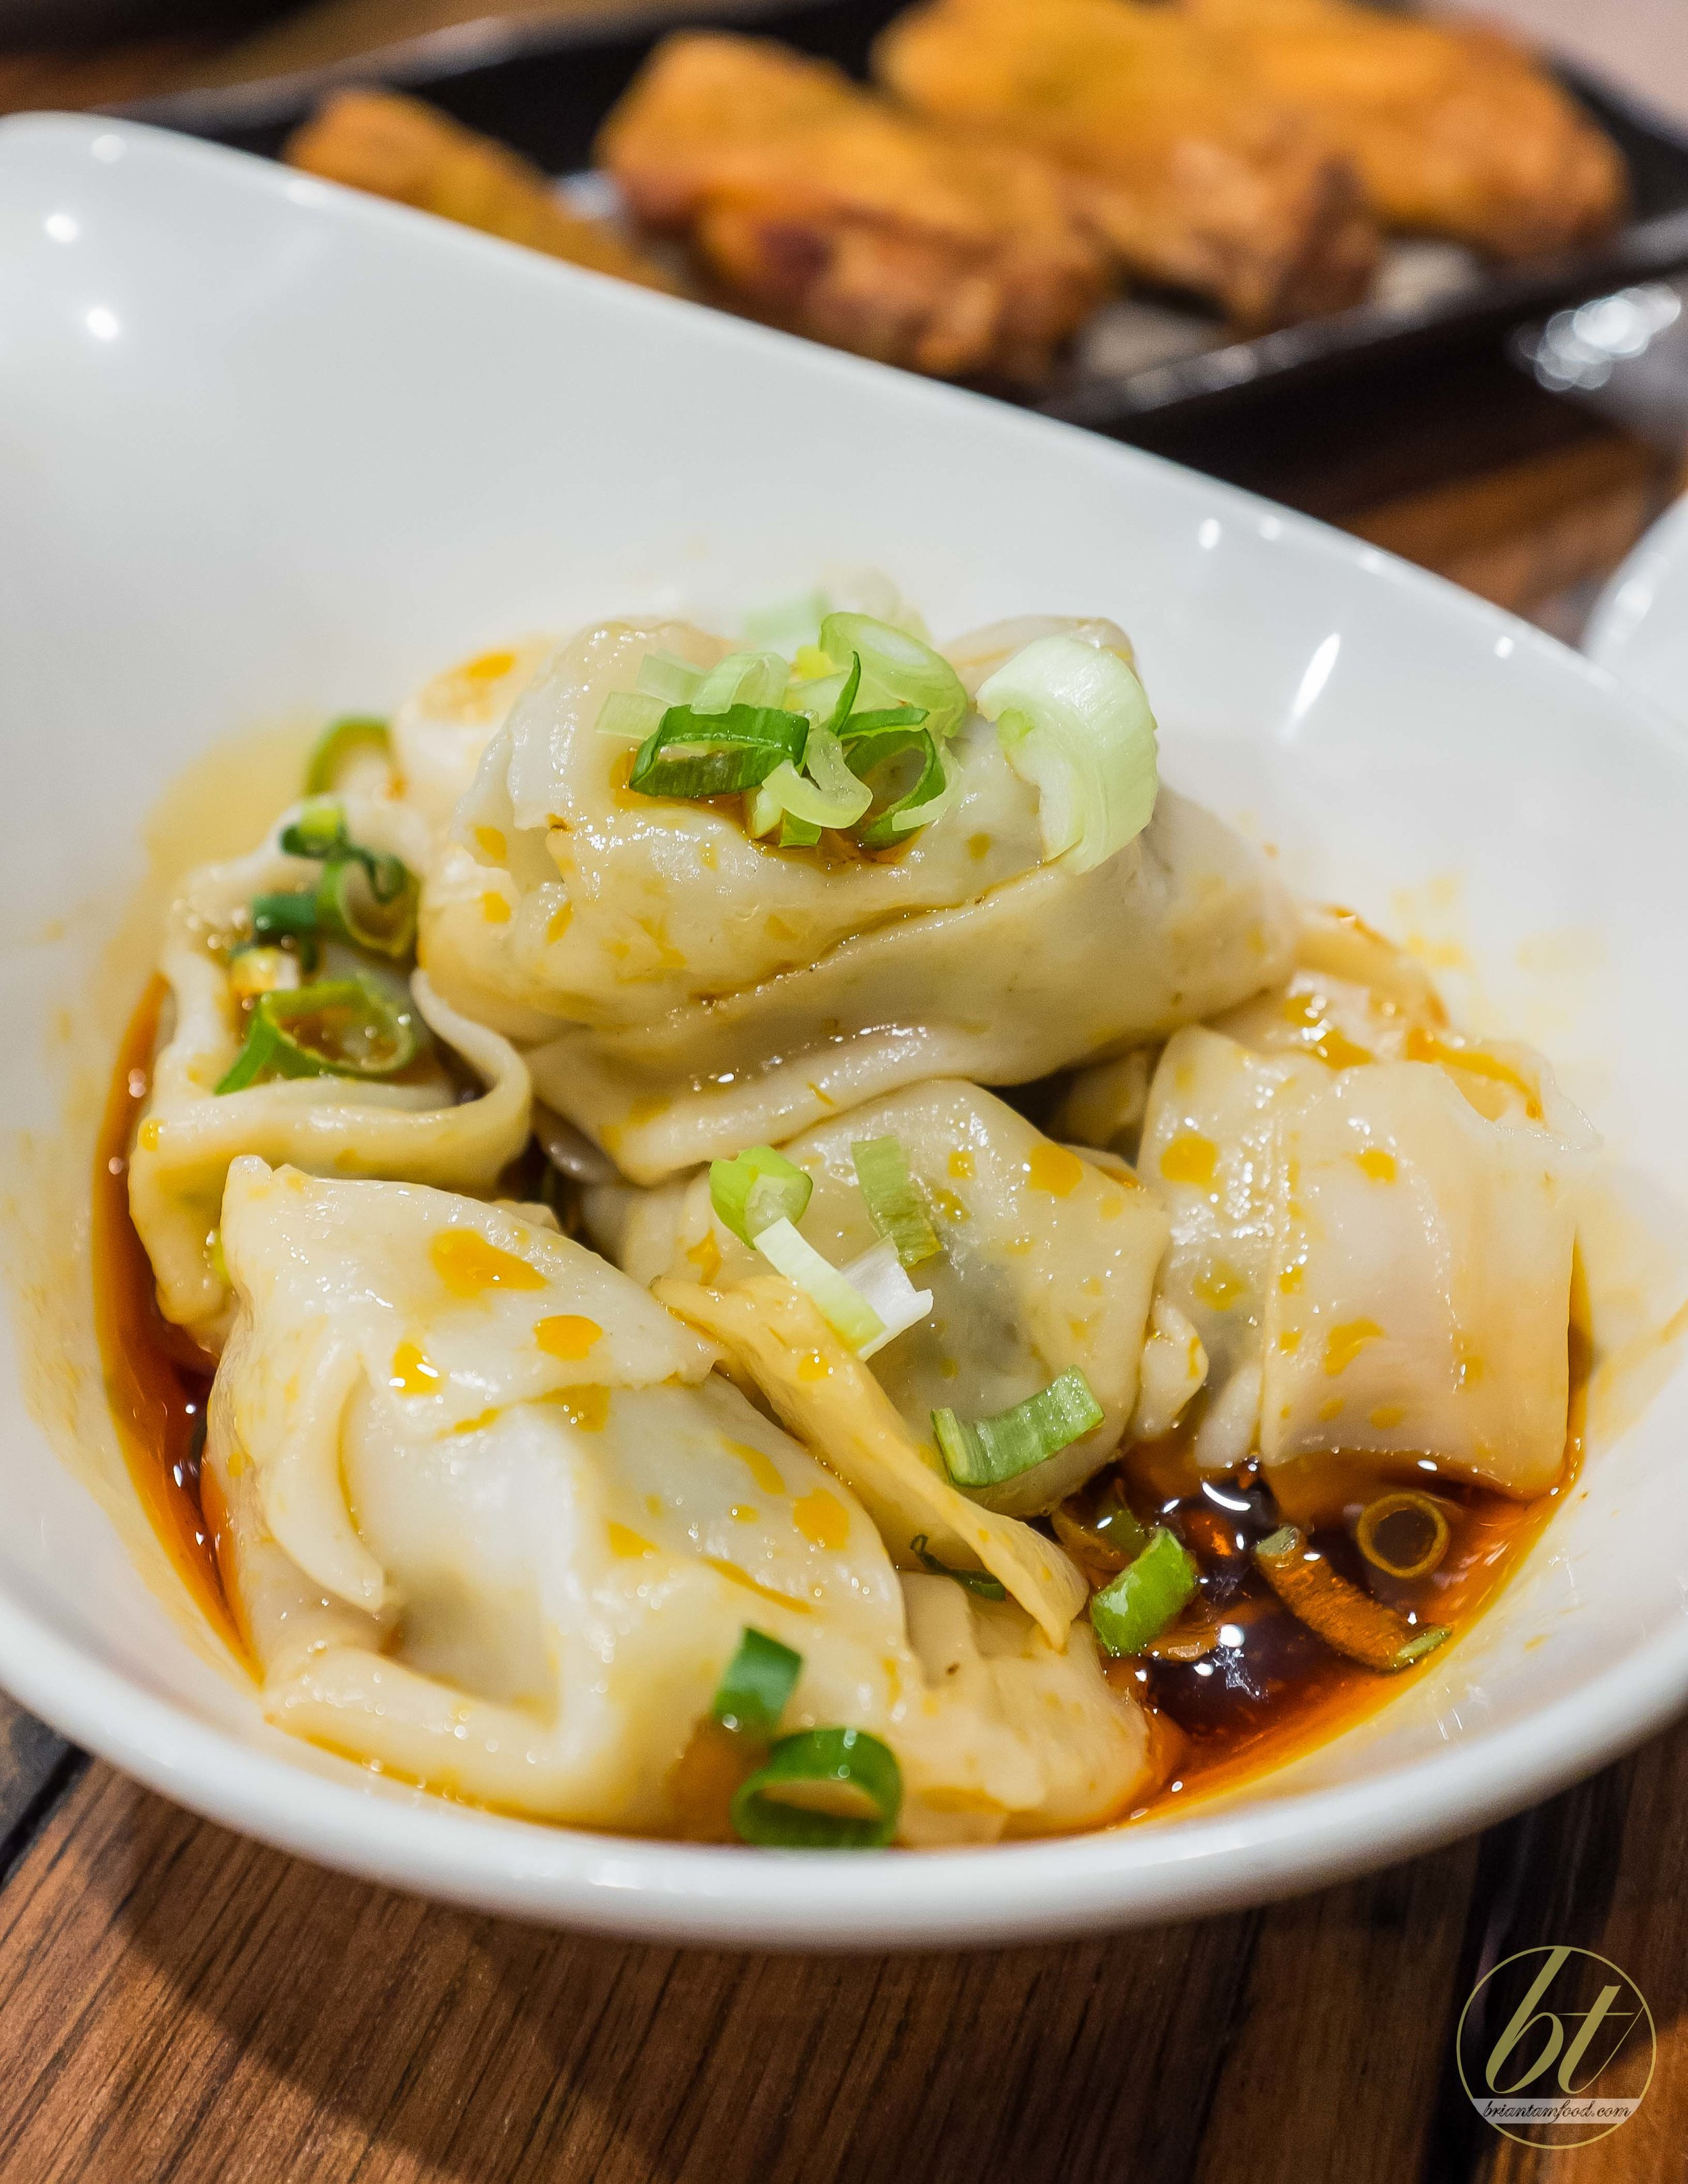 Wontons with Chilli Sauce, ($8.80 for 6)